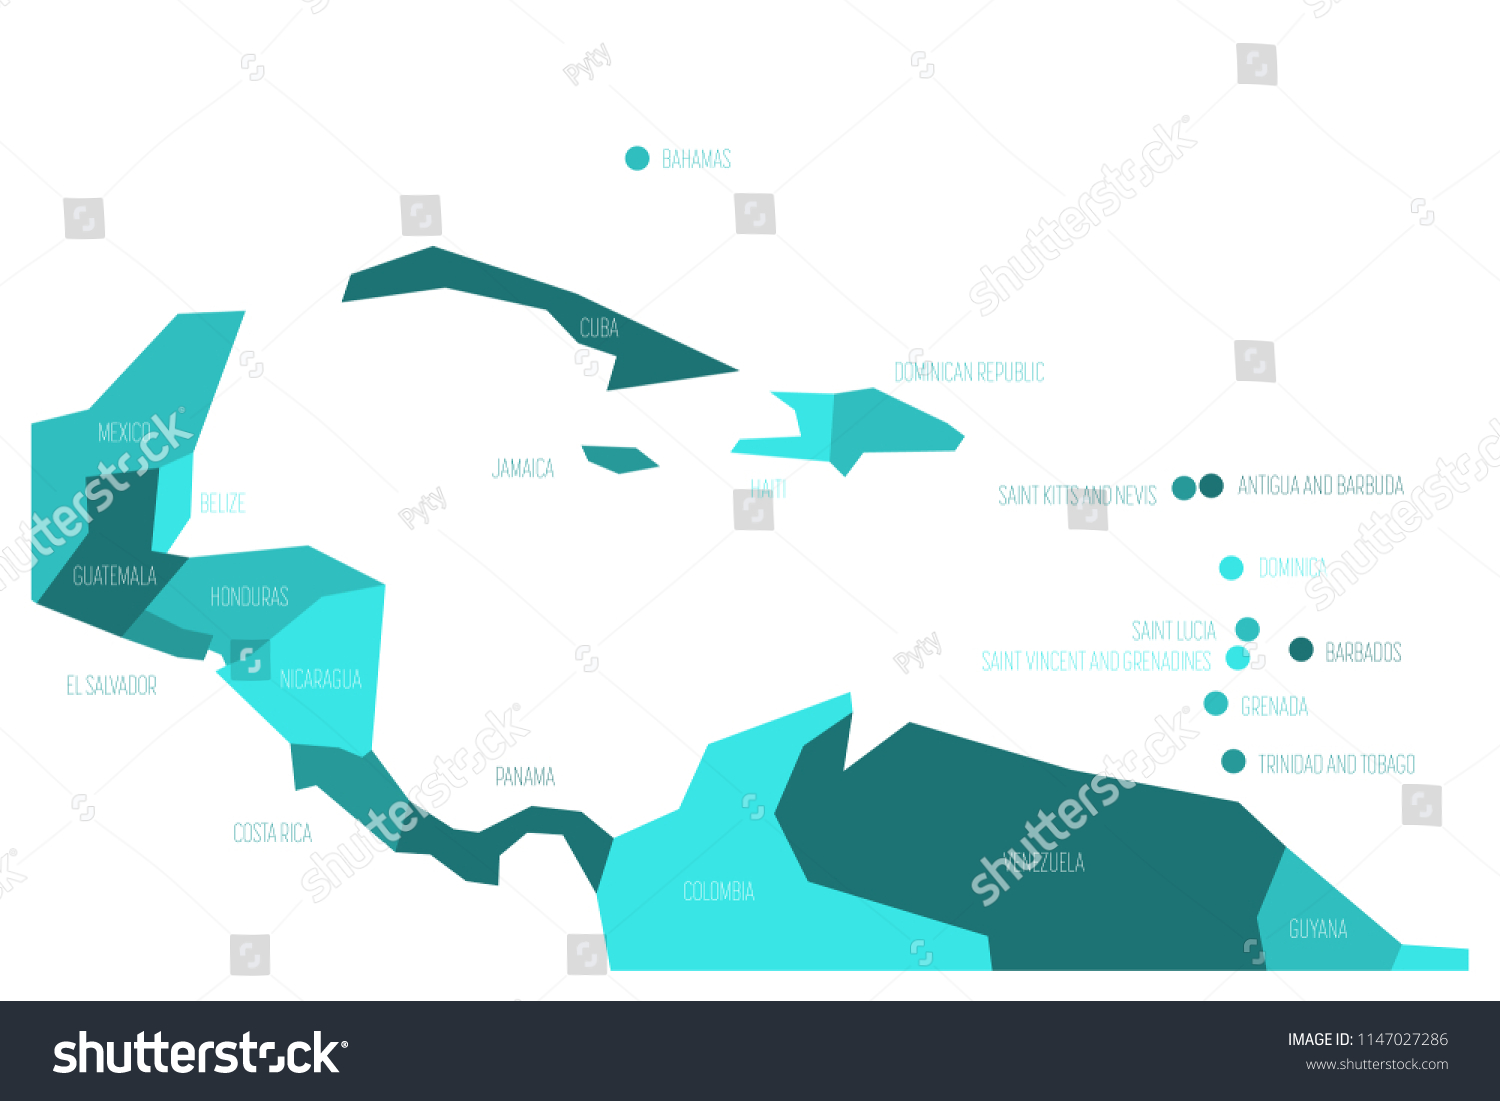 Map Of America And Caribbean.Map Central America Caribbean Simplified Schematic Stock Vector